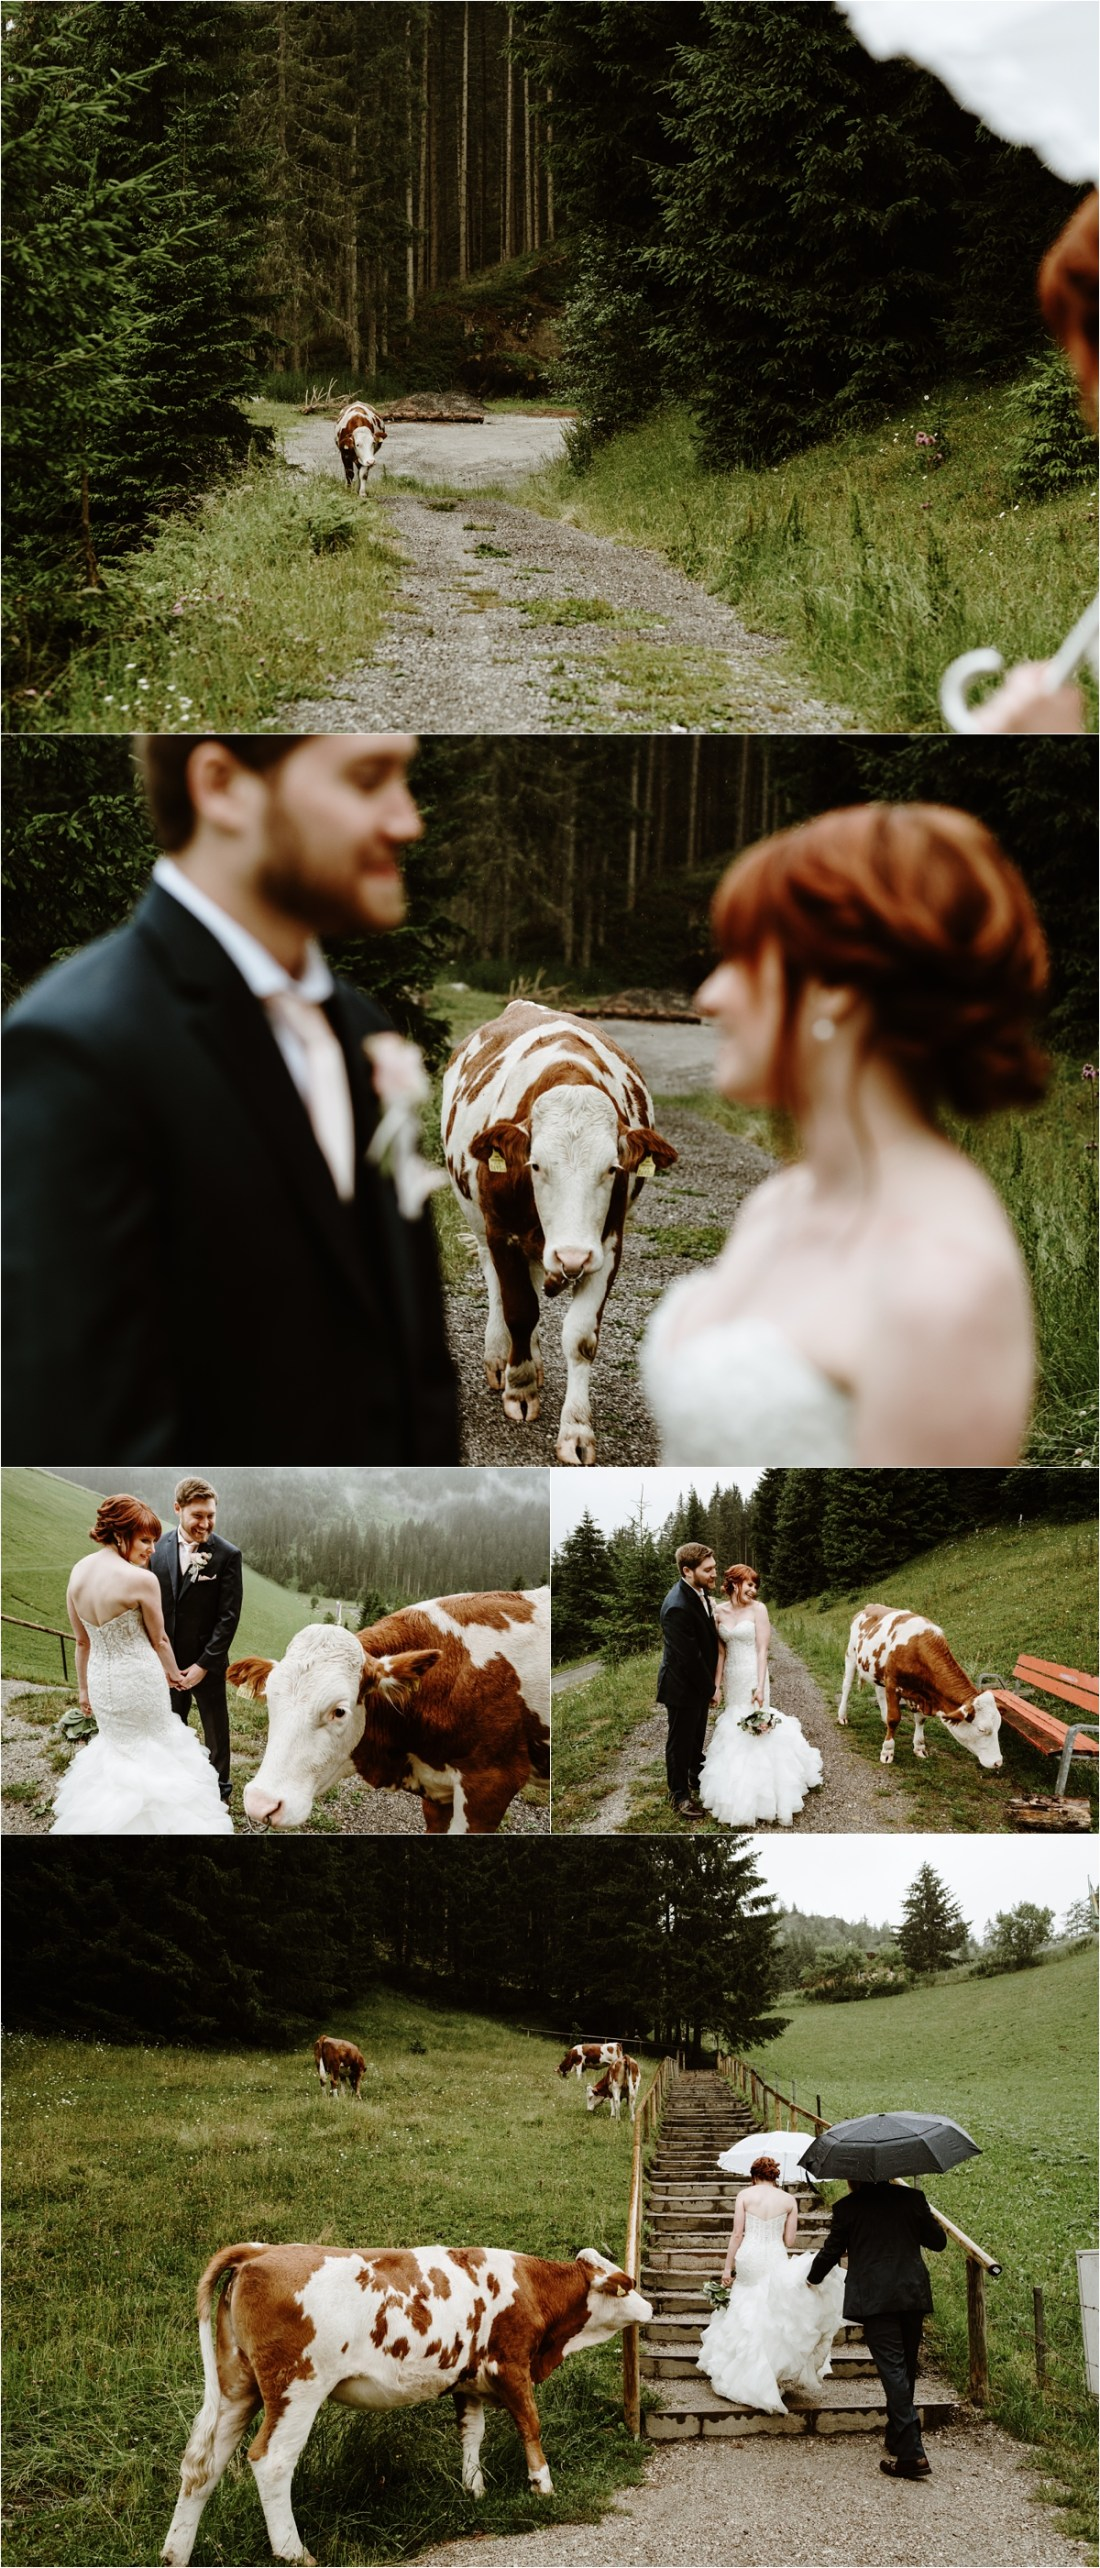 A curios cow follows the bride and groom during their pictures in Gerlos in Austria. Photos by Wild Connections Photography